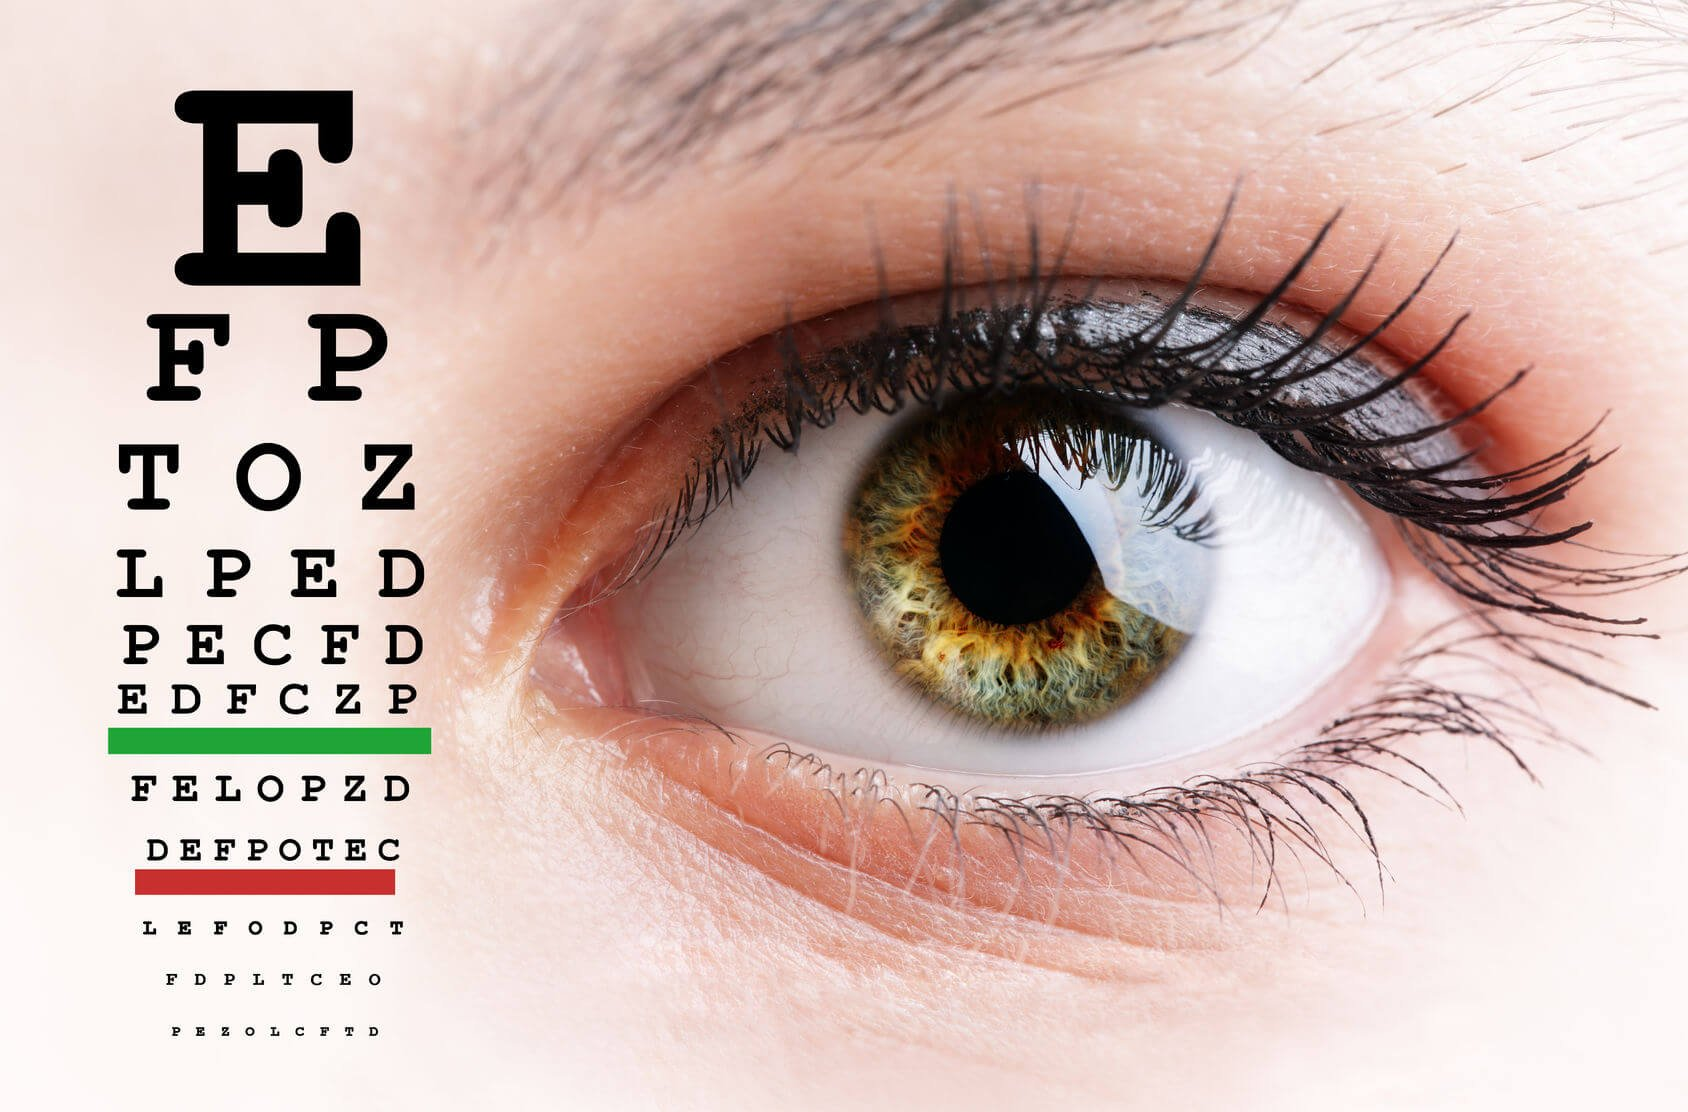 How to Improve Your Vision Naturally (5 foods that help eyesight)